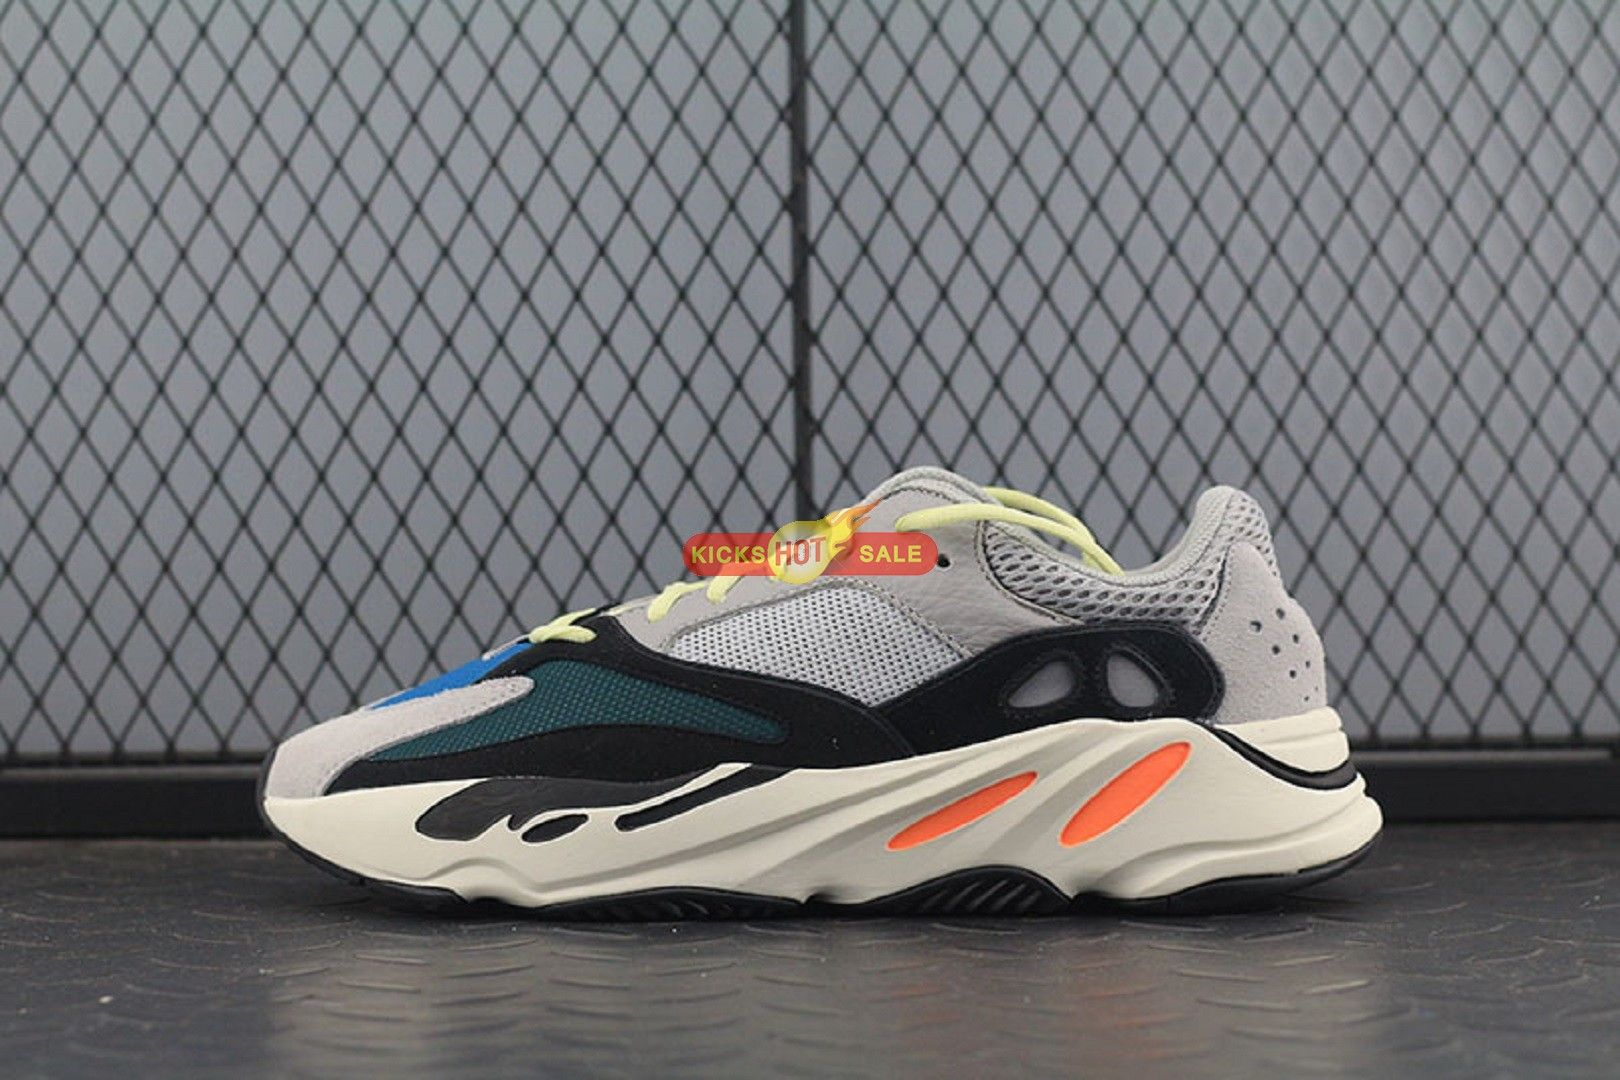 new concept b8b21 1cf06 adidas Yeezy Wave Runner 700 Solid Grey B75571 | From ...